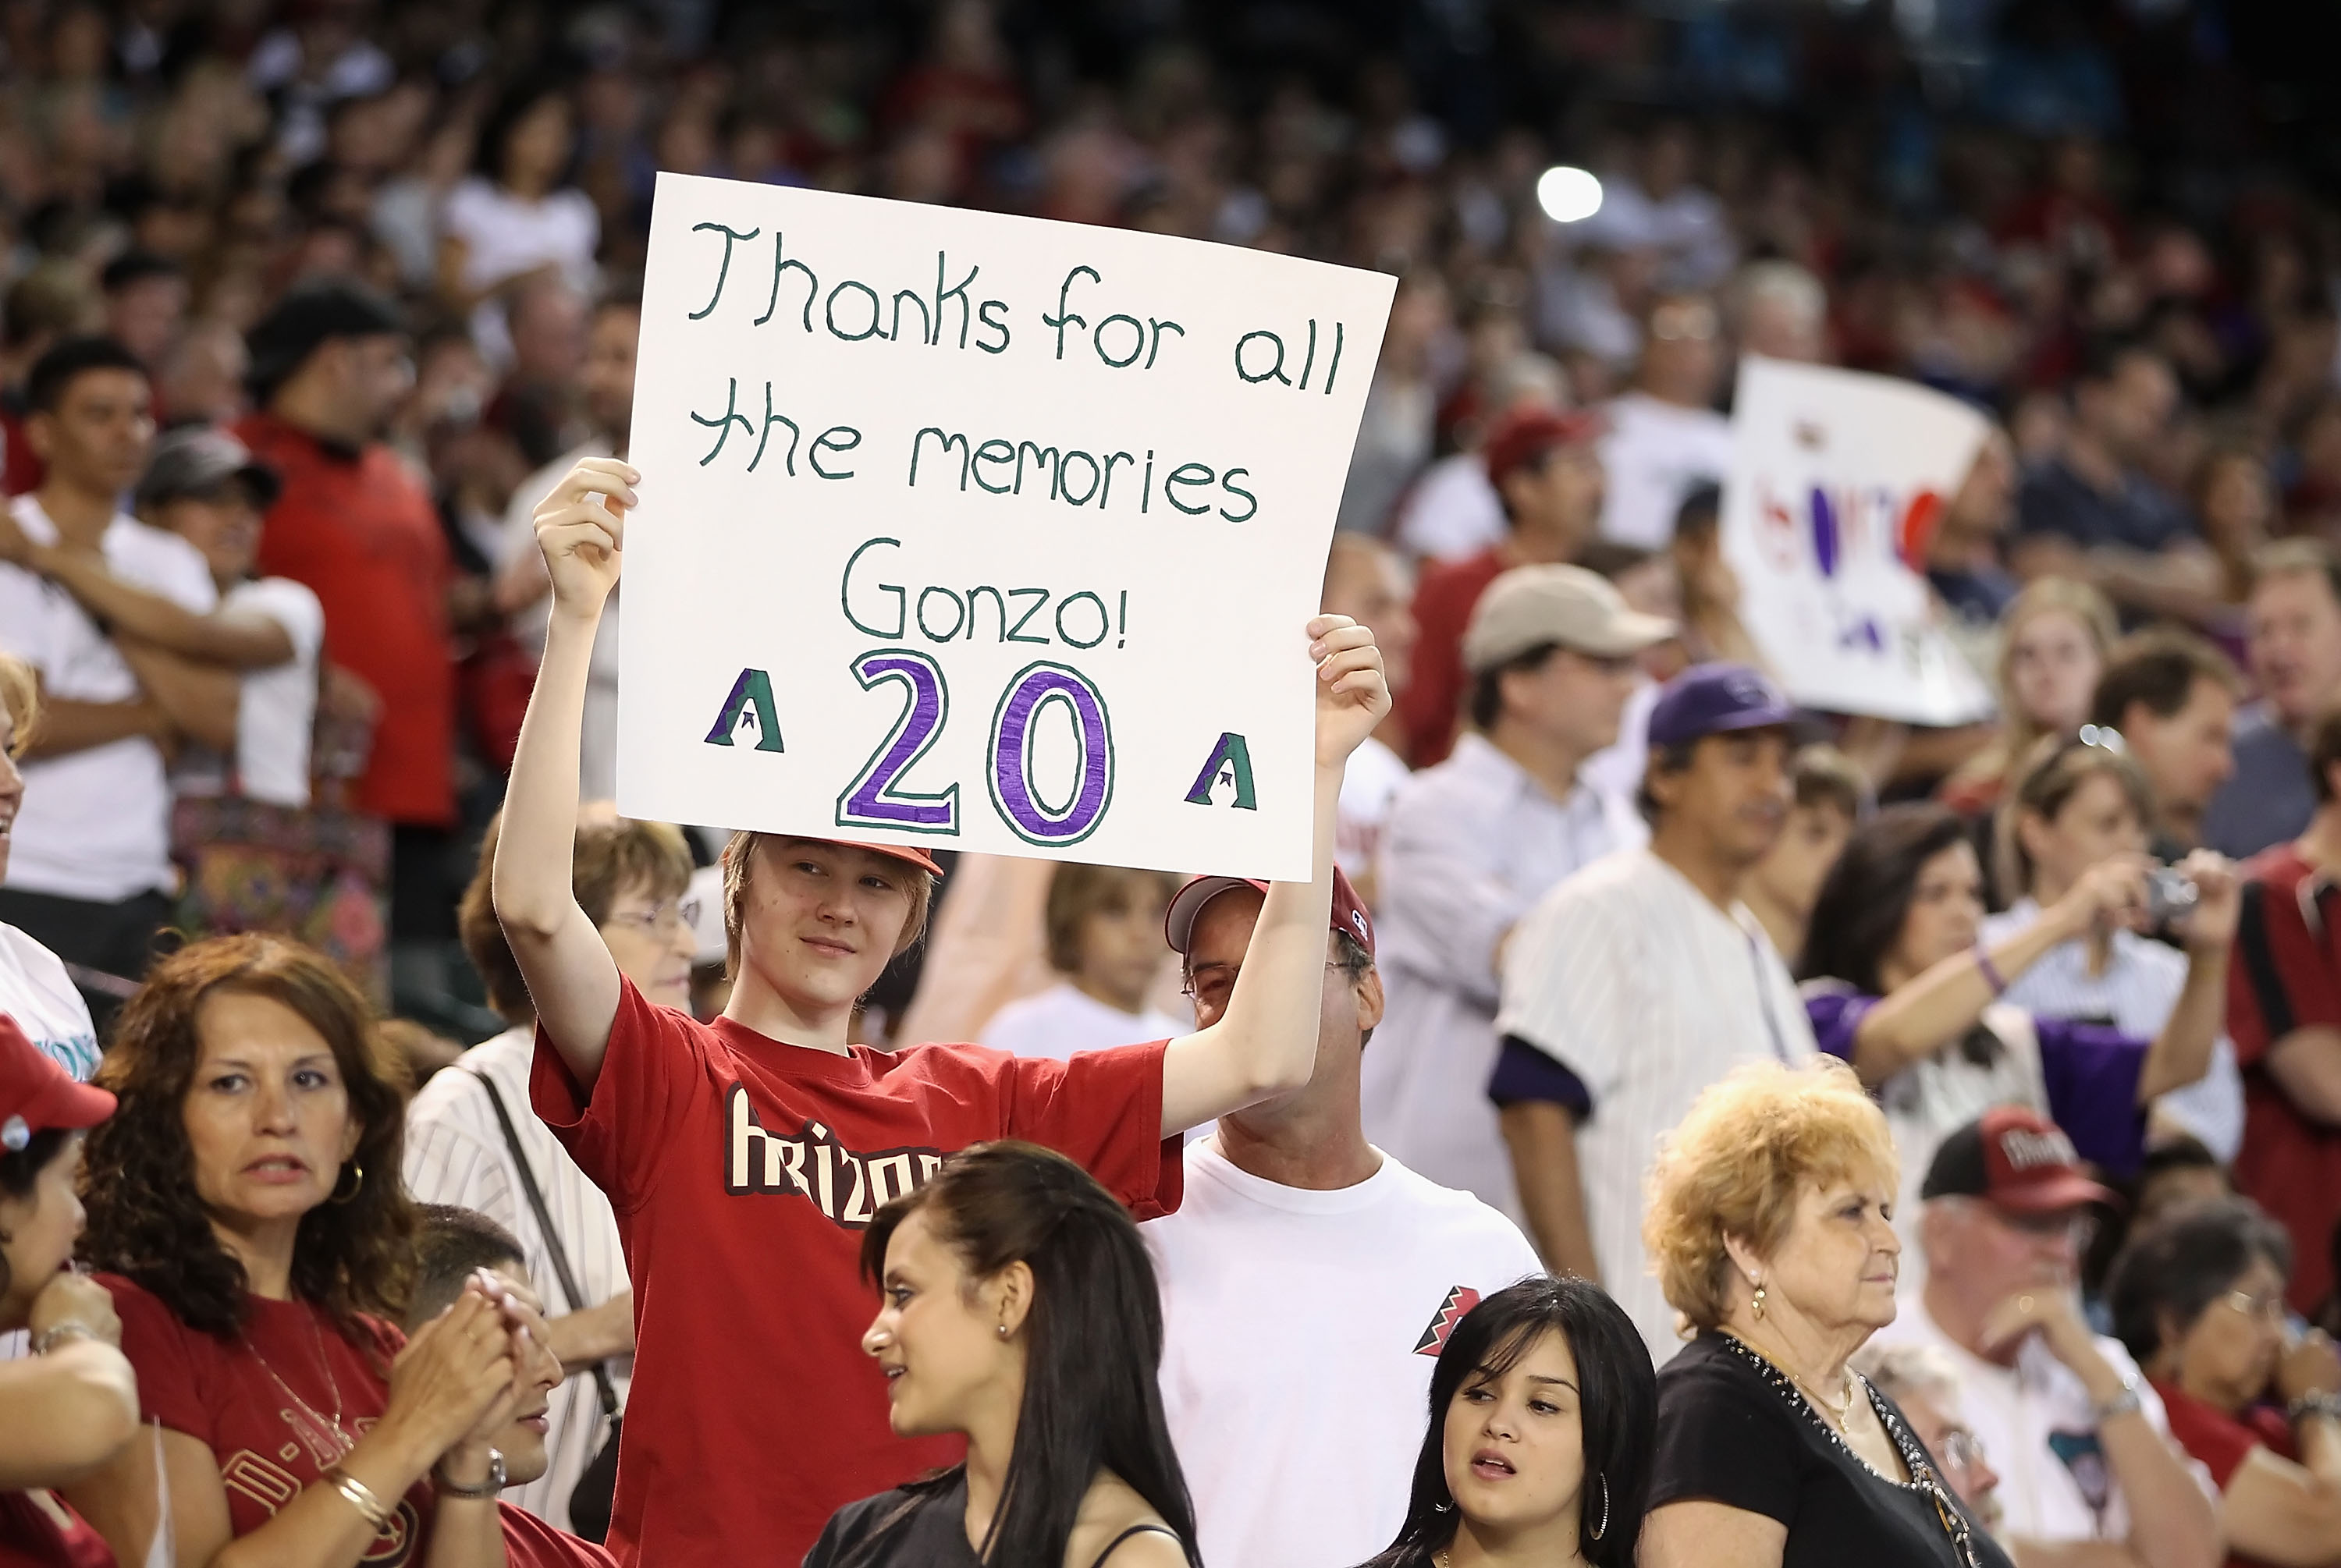 0d044358189 PHOENIX - AUGUST 07  Fans hold signs in honor of Luis Gonzalez getting his  number